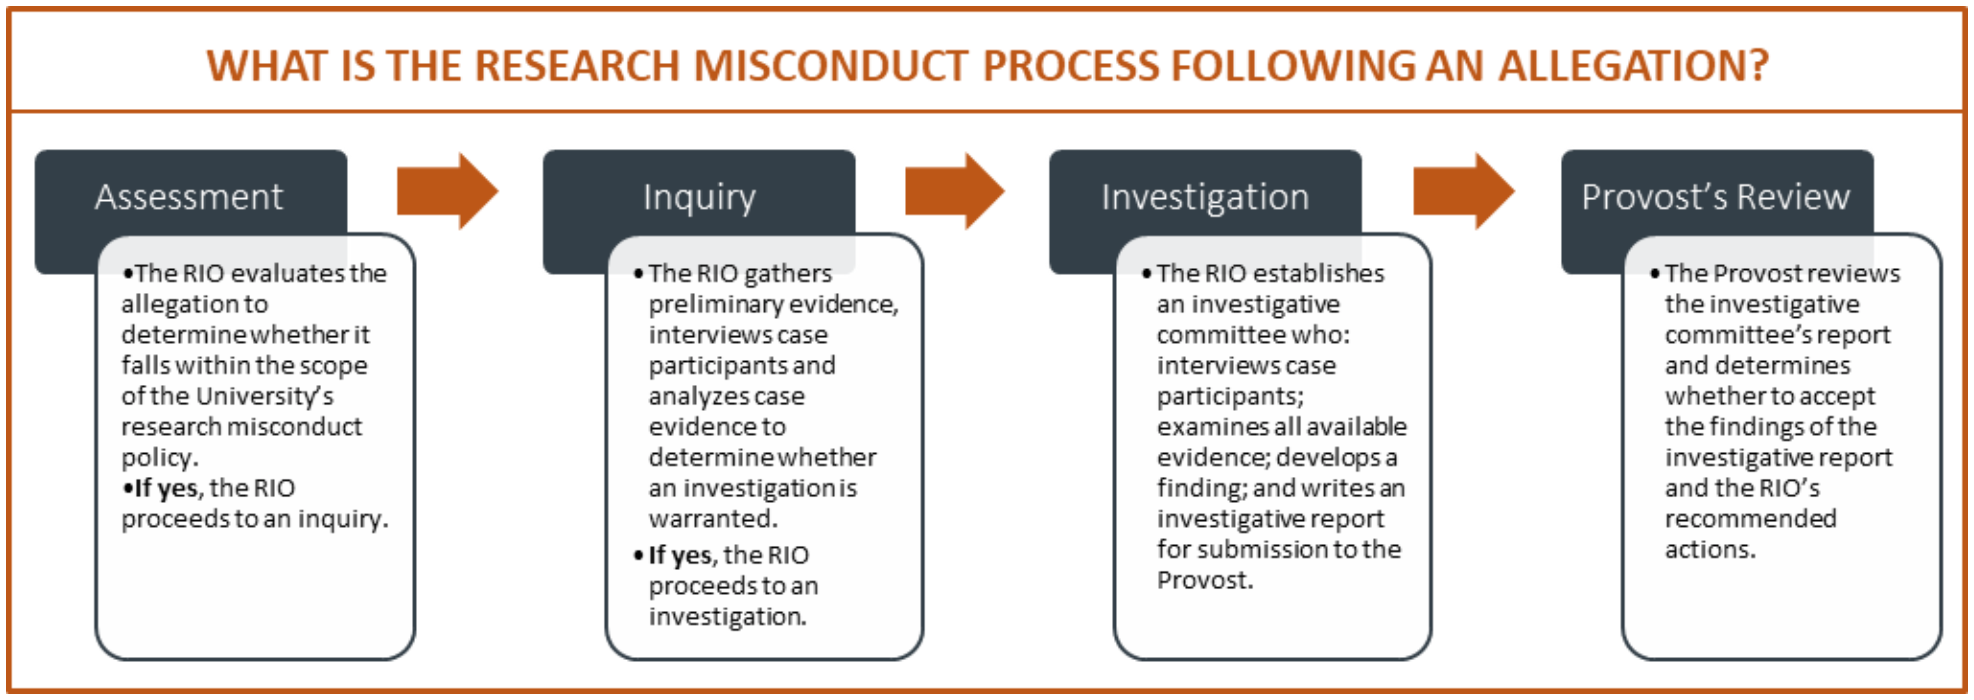 research misconduct evaluation process